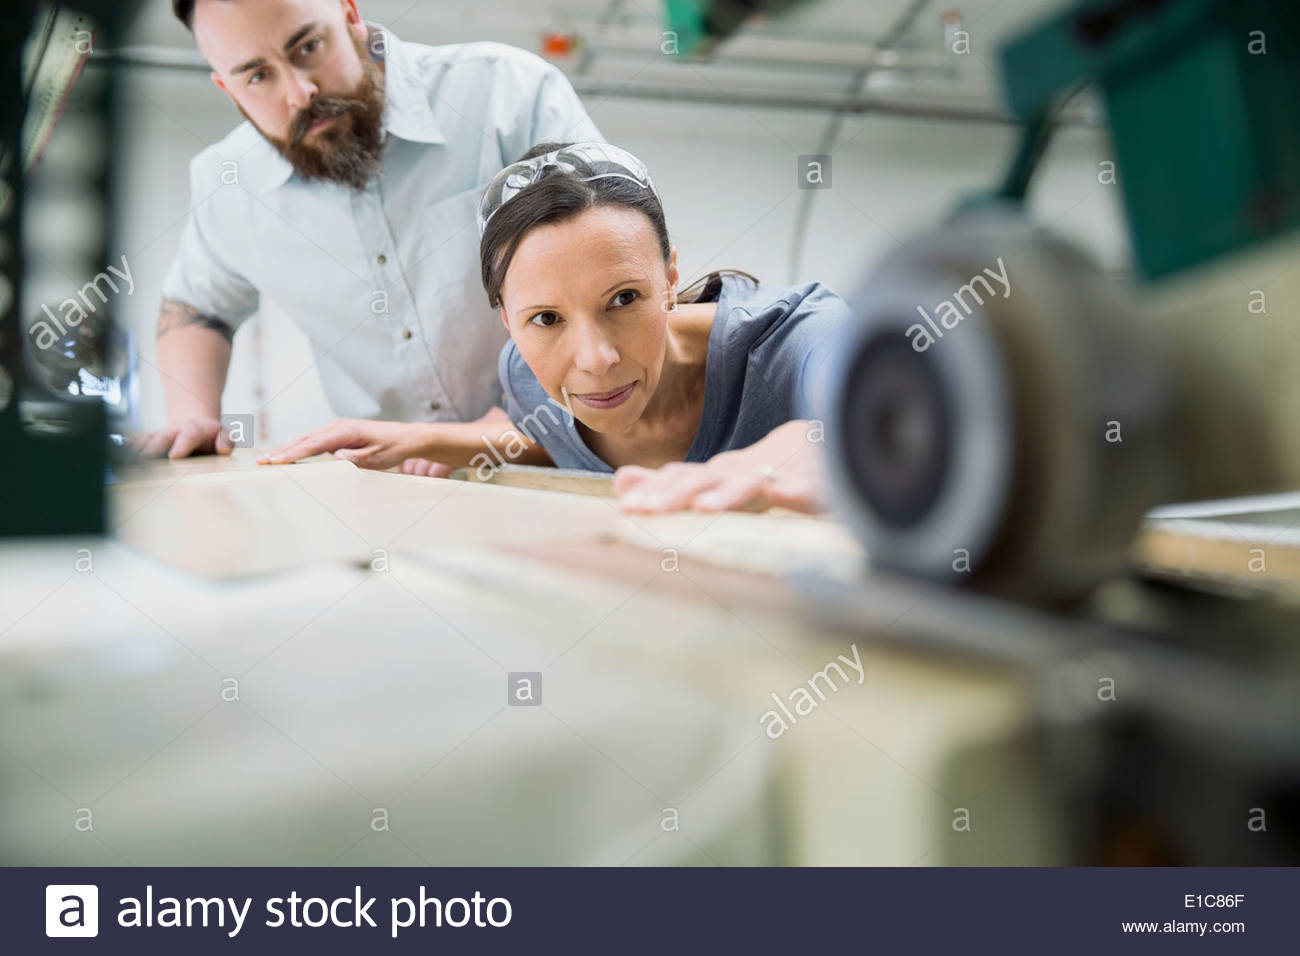 Workers using machinery in textile manufacturing plant - Stock Image